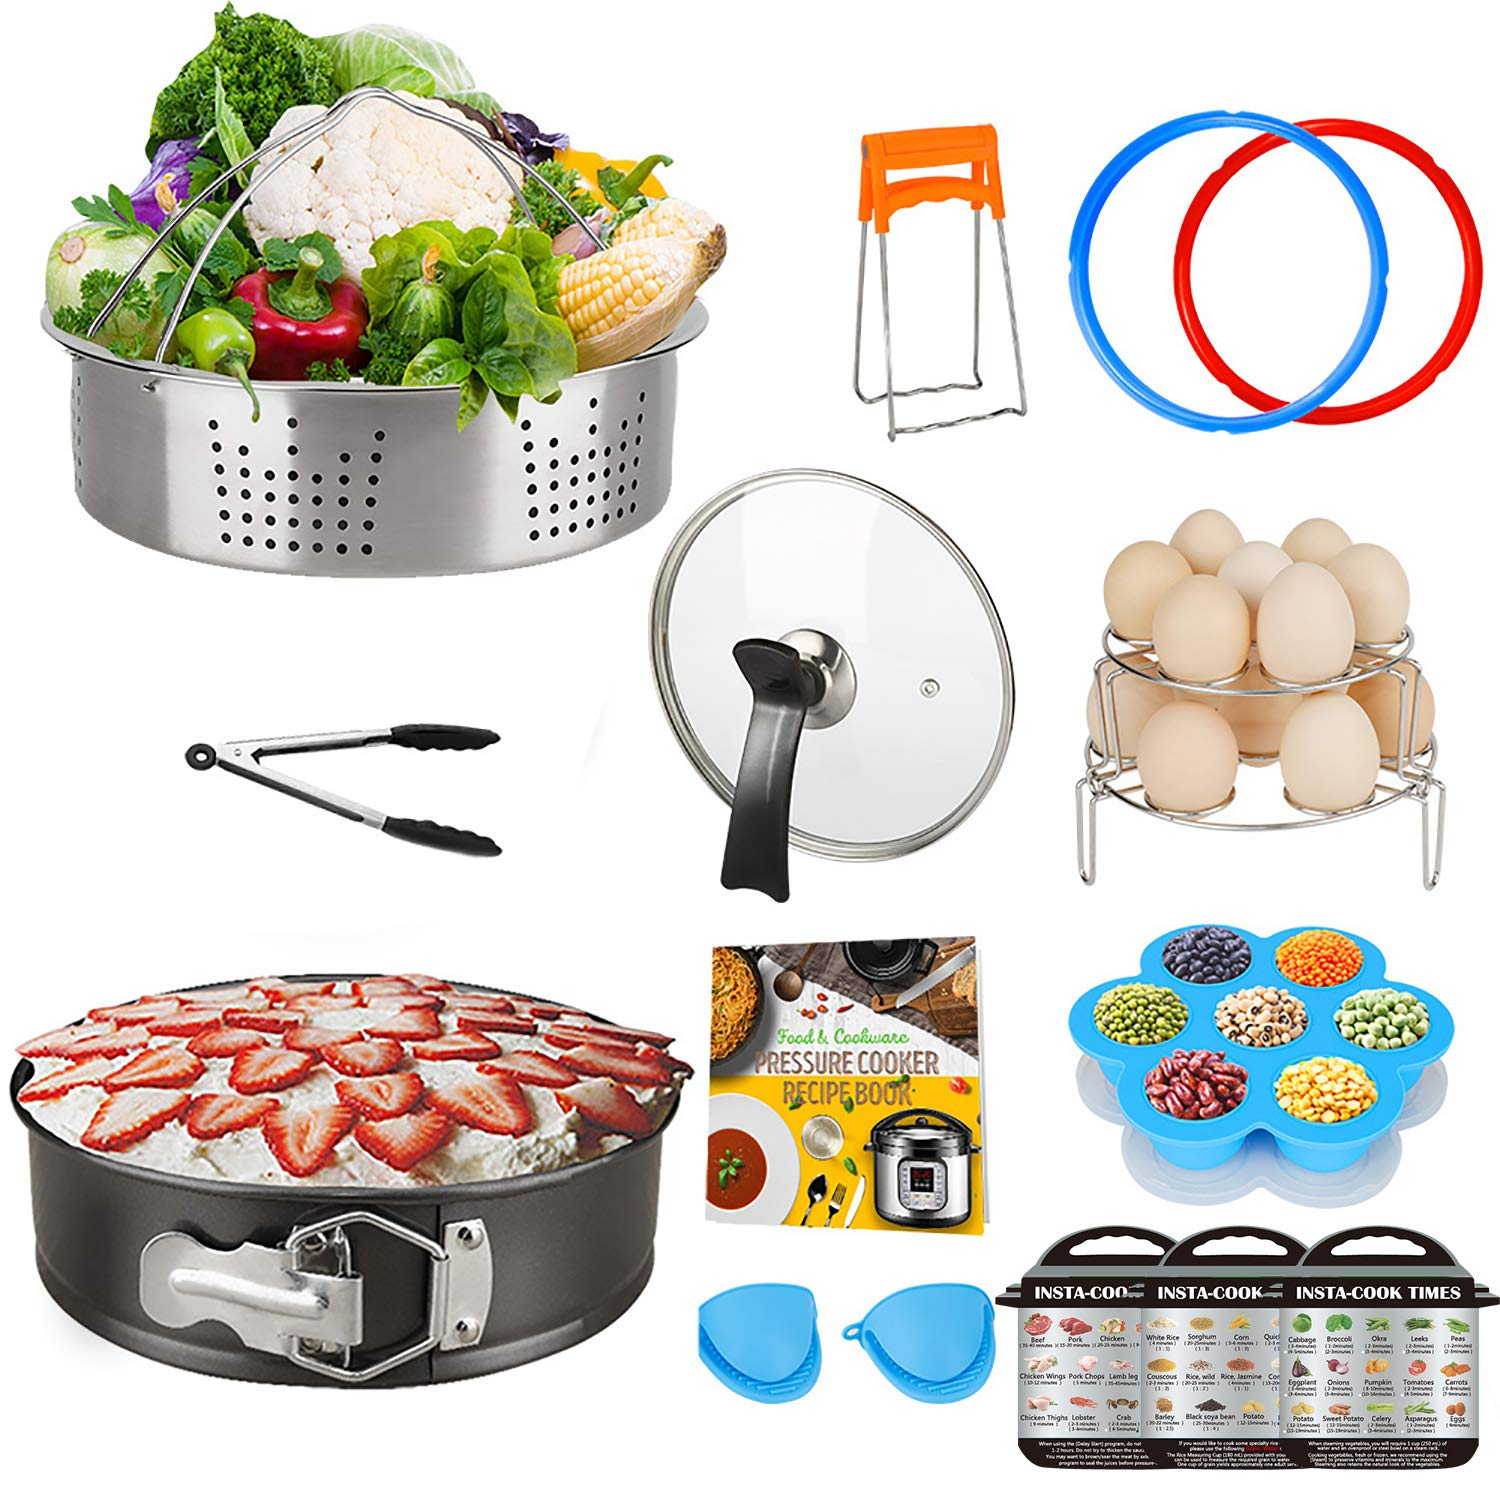 Pressure Cooker Accessory Set, Accessories 6 Qt Compatible with 6Qt Instant Pot, with Silicone Sealing Rings, Tempered Glass Lid, Steamer Basket, Non-Stick Springform Pan by Acnusik